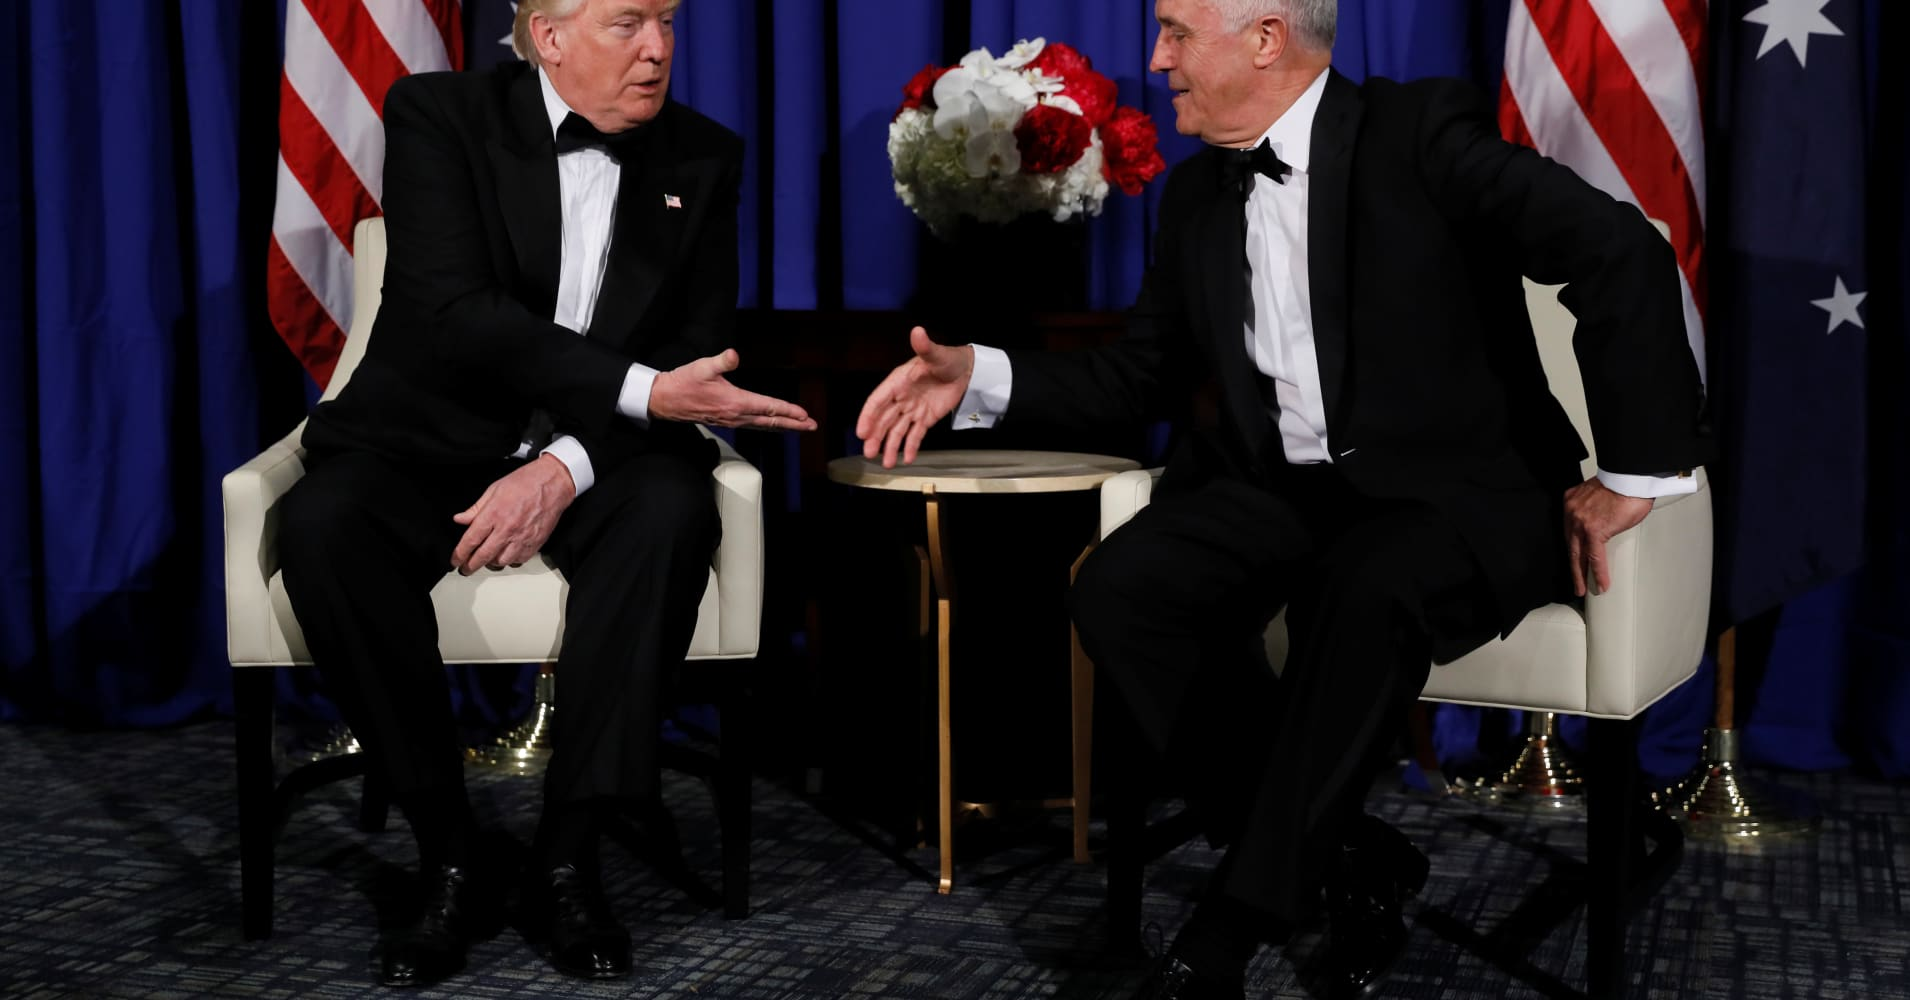 Trump, Australia's Turnbull hold first meeting in move to clear air after tense phone call